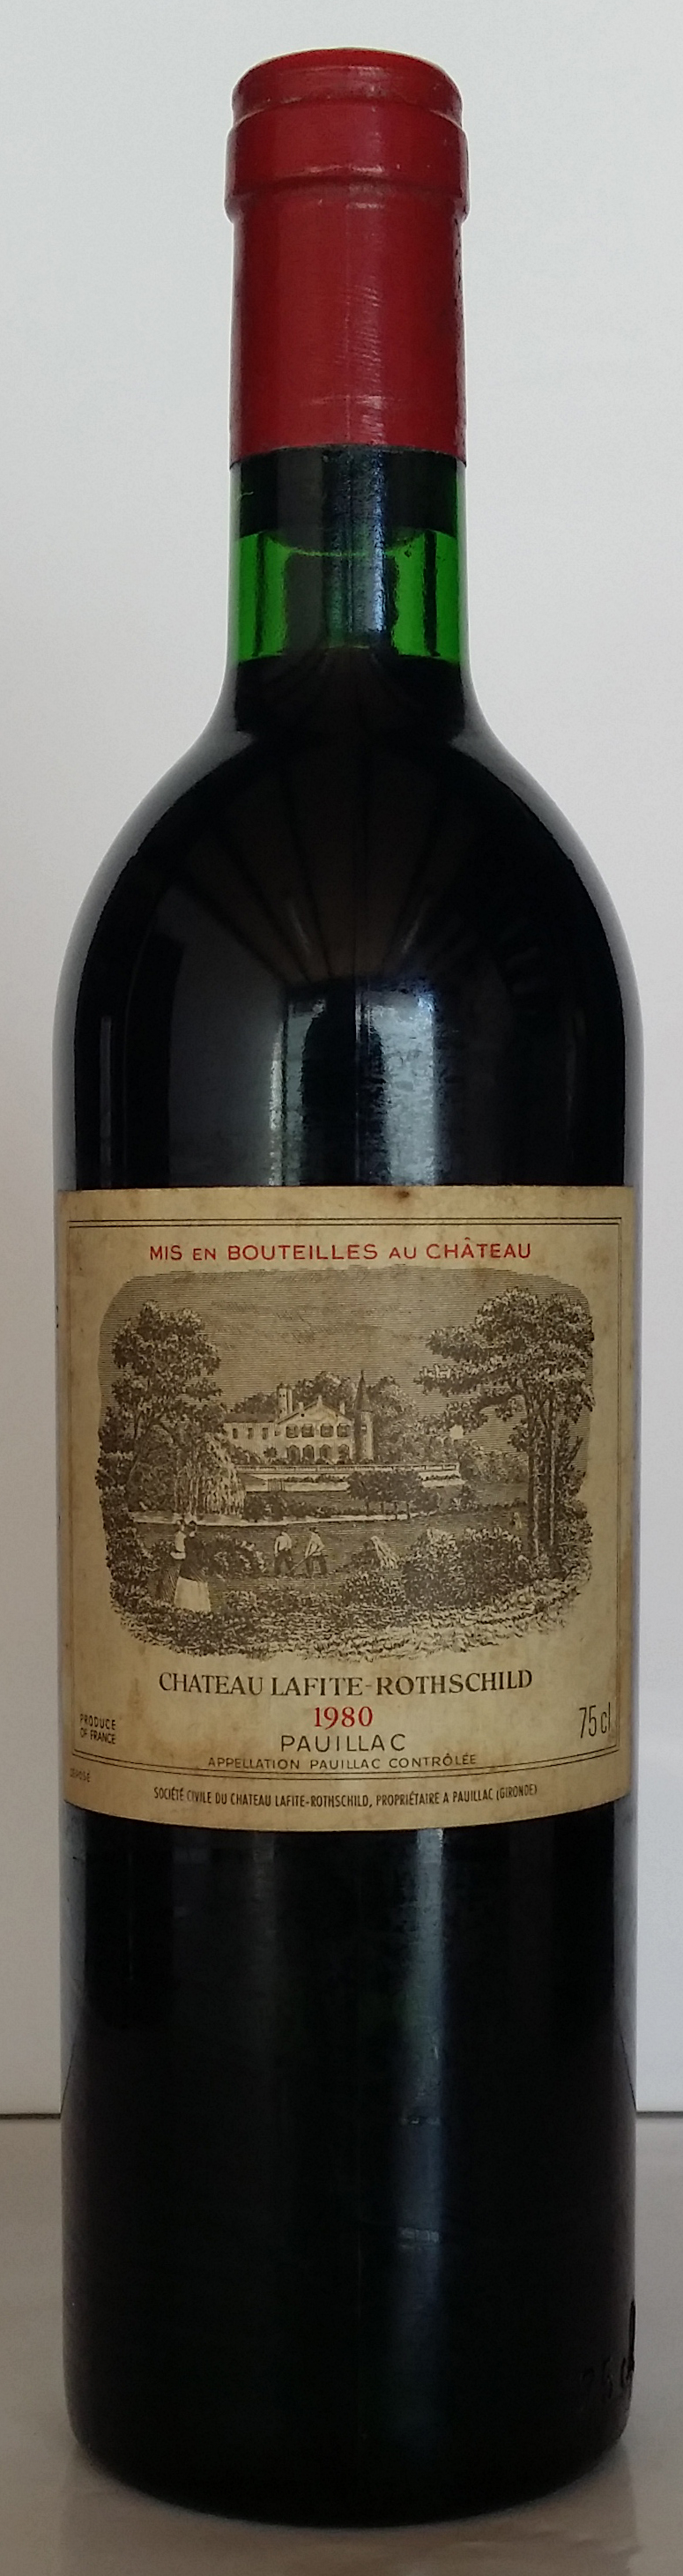 1980 Domaines Barons de Rothschild Chateau Lafite Rothschild